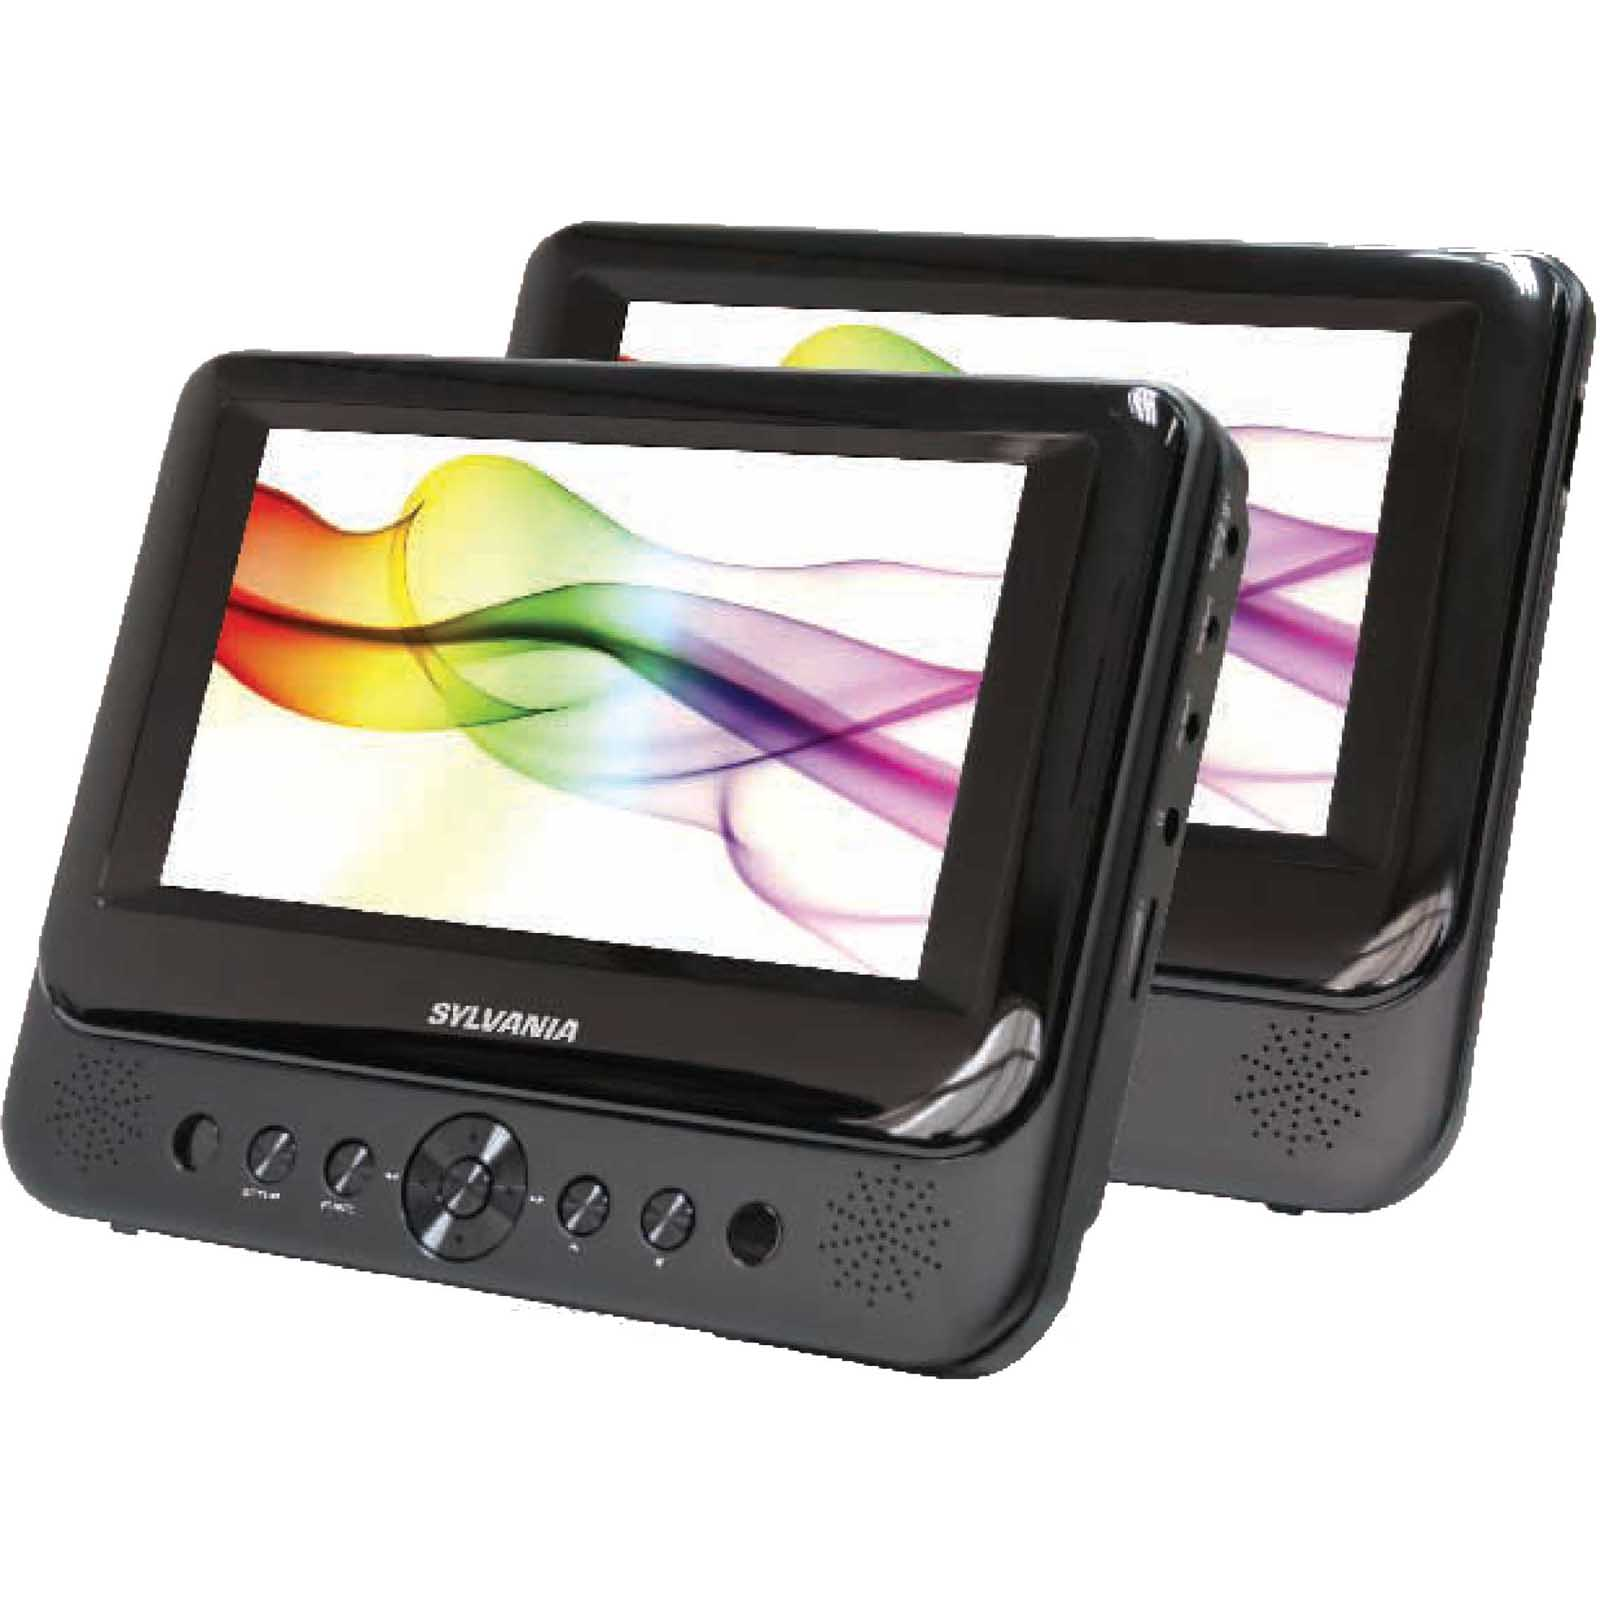 "Sylvania 7"" Dual Screen Portable DVD Player PartNumber: 018W005927353003P KsnValue: 5927353 MfgPartNumber: SDVD8737A"